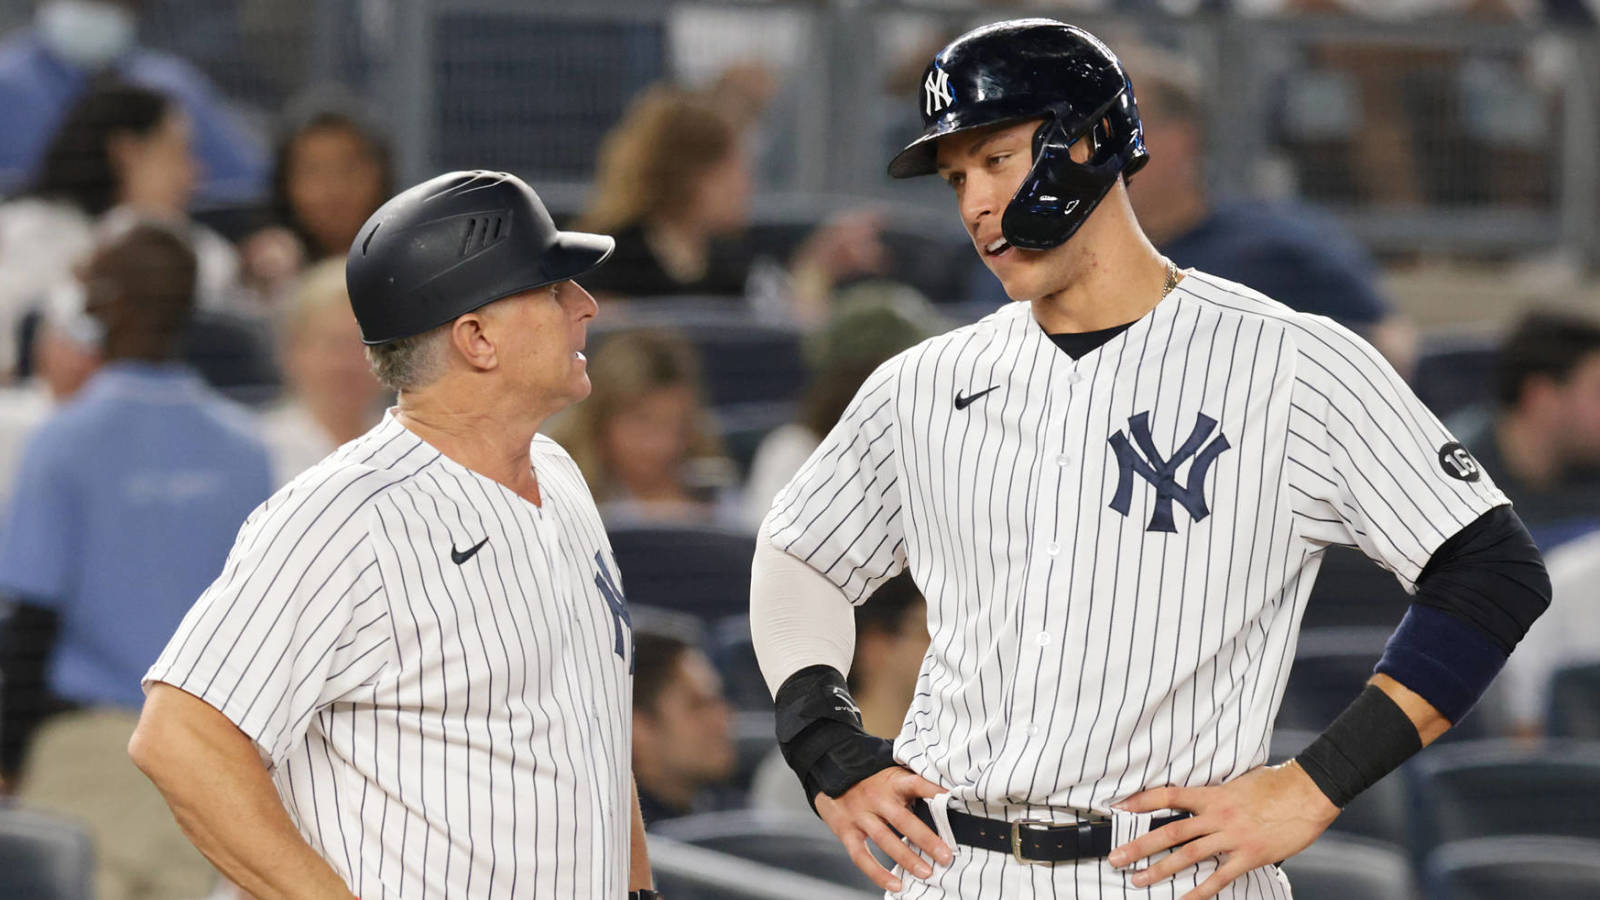 Aaron Judge agrees with Steinbrenner's comments